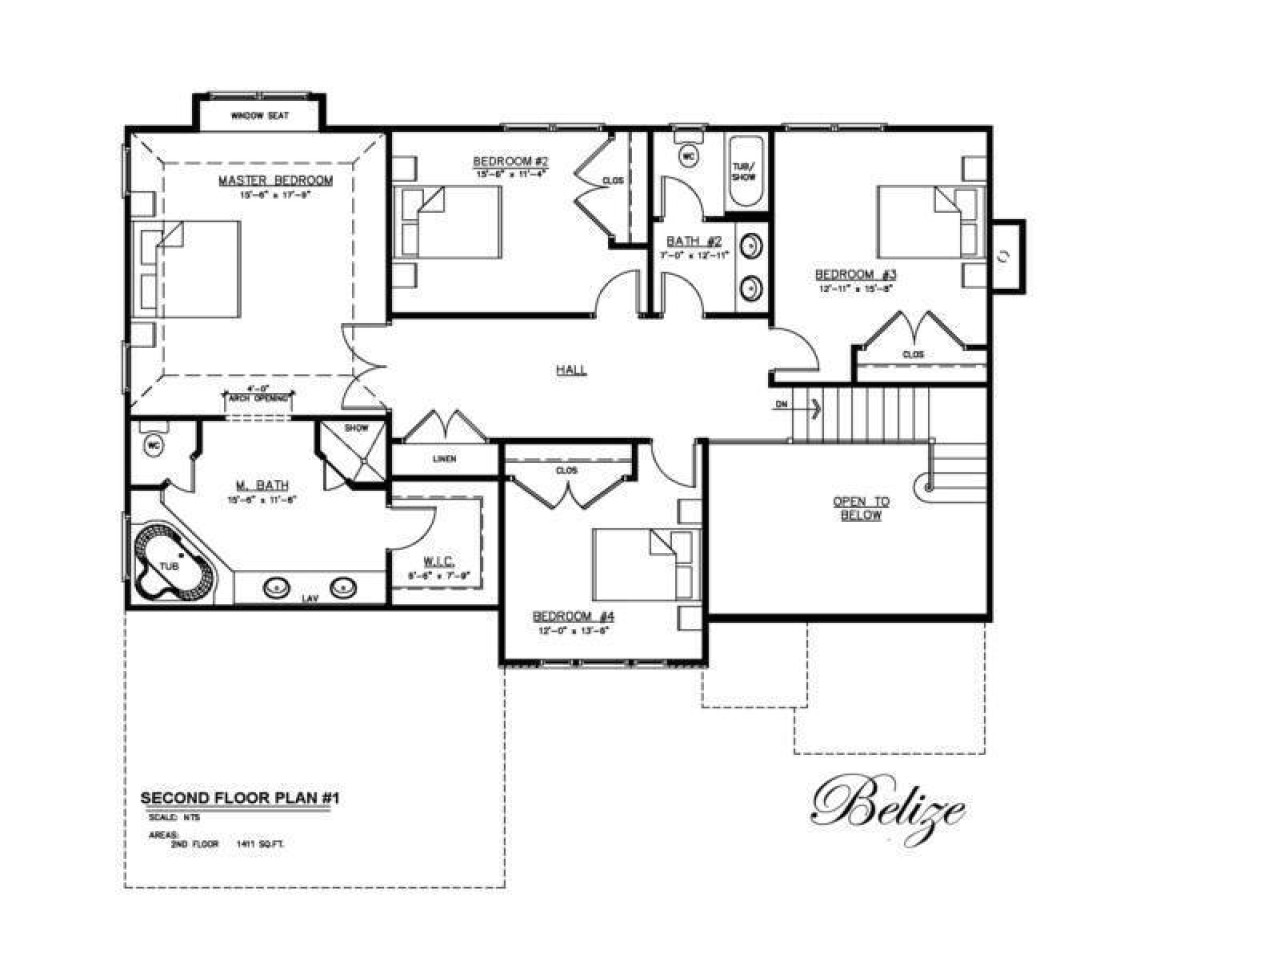 97f669b14ceda019 funeral home designs floor plans design templates funeral home